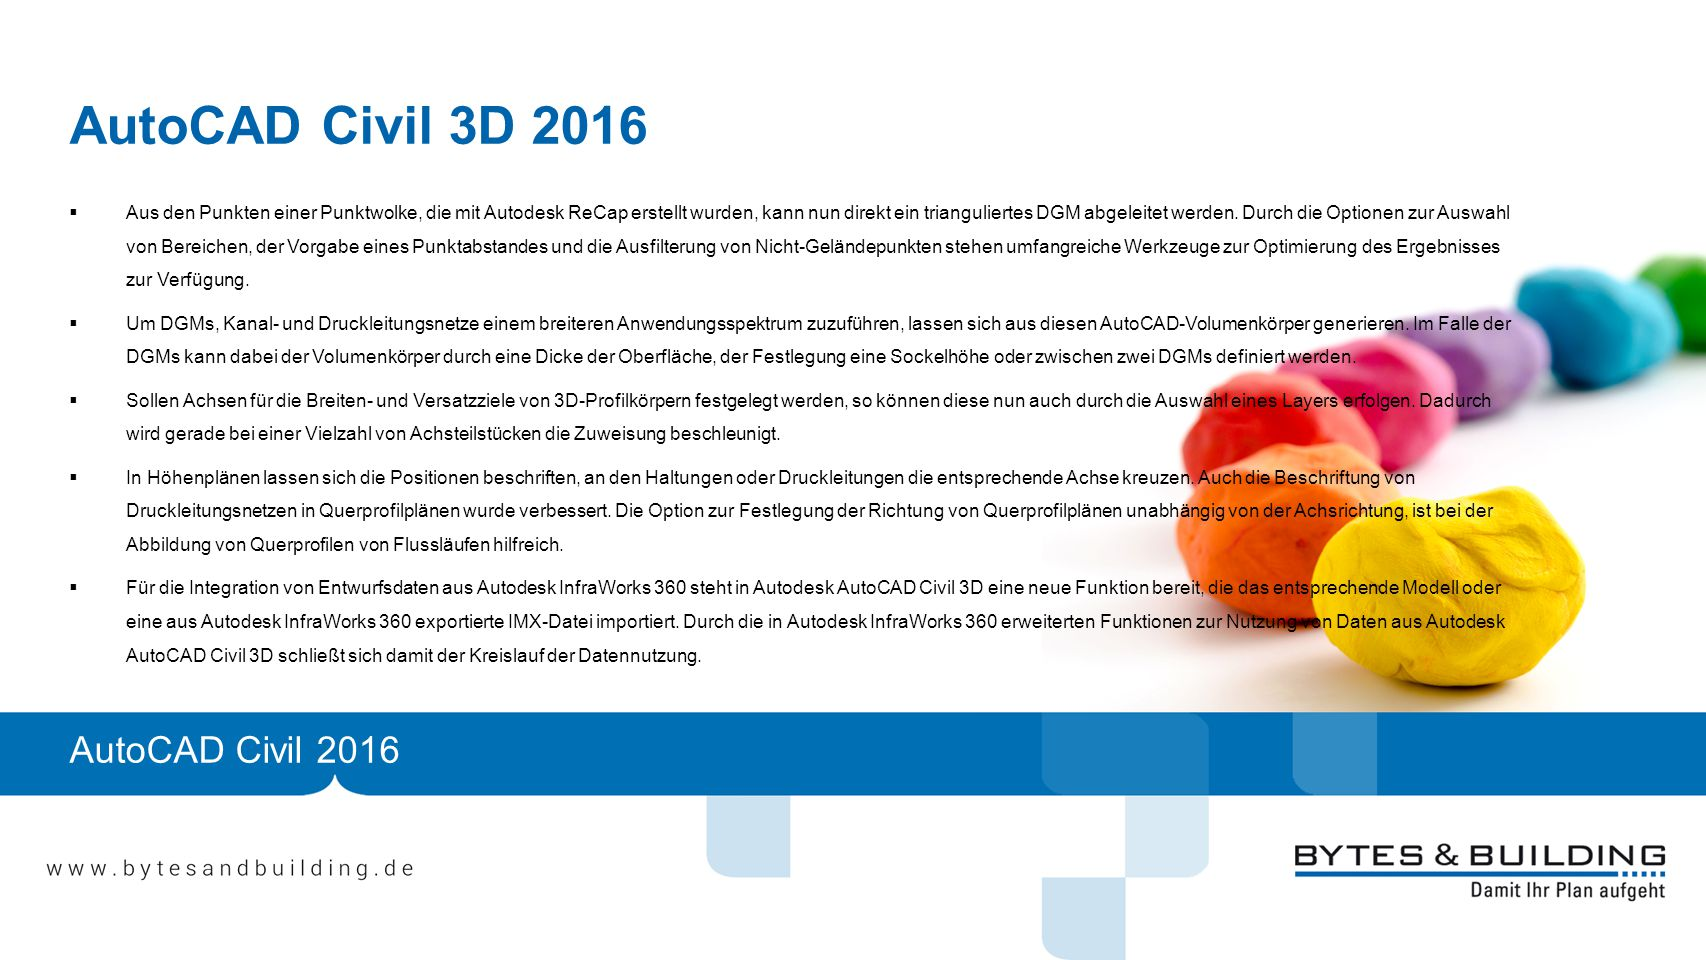 AutoCAD Civil 3D 2016 AutoCAD Civil 2016